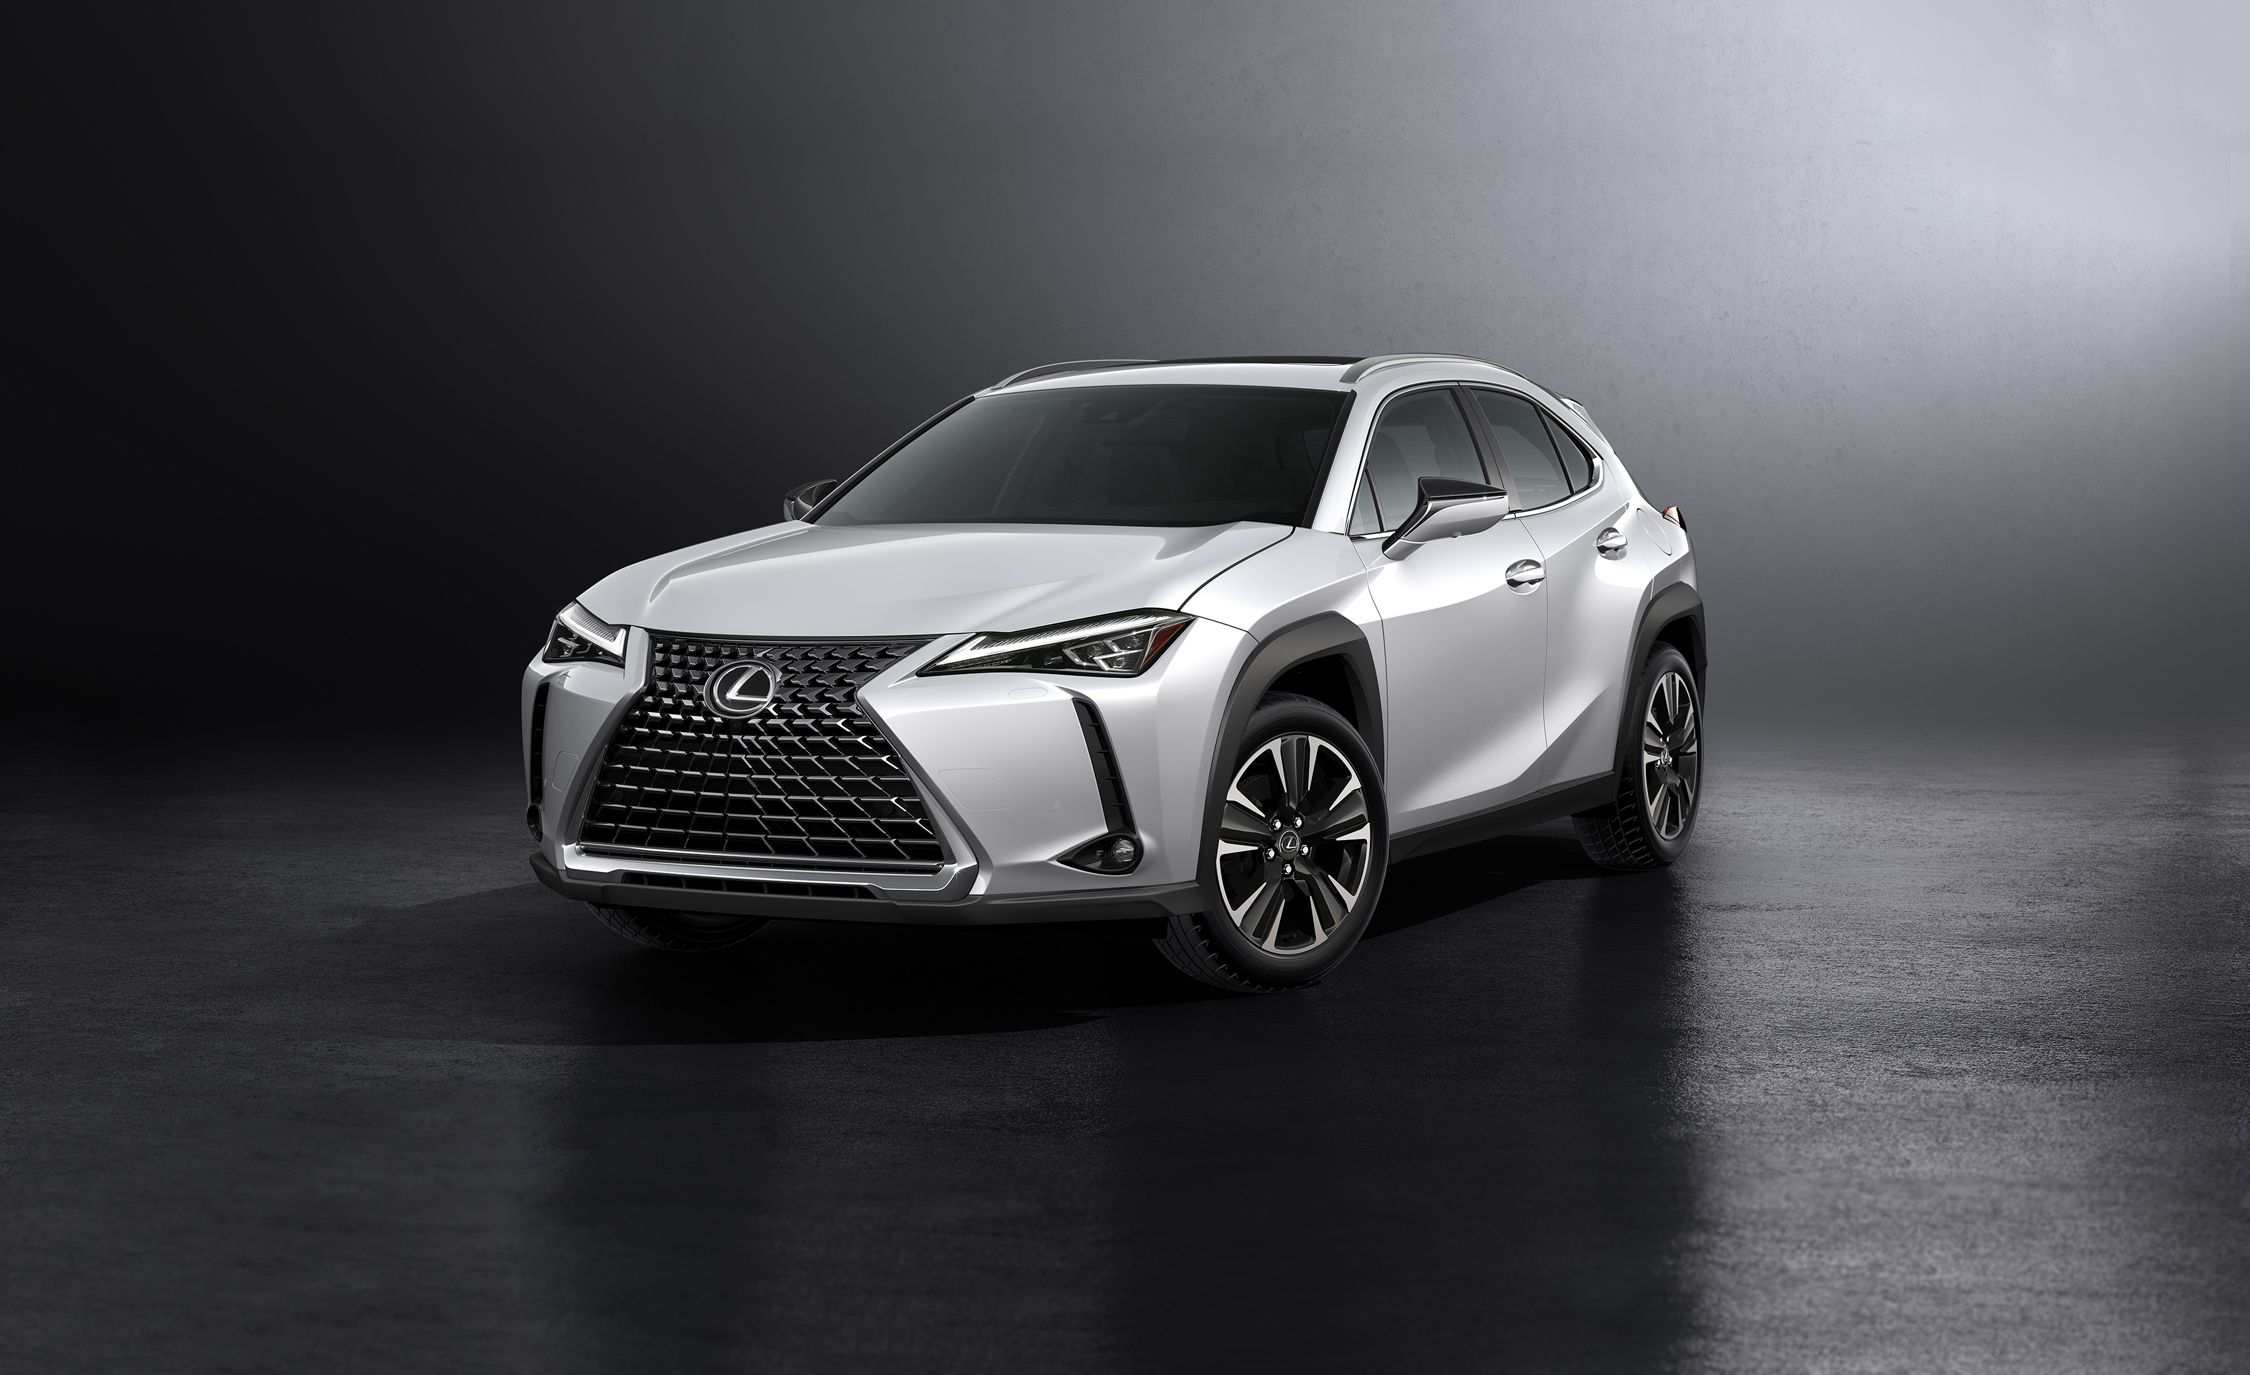 60 Gallery of Lexus 2019 Us Redesign And Concept Prices for Lexus 2019 Us Redesign And Concept